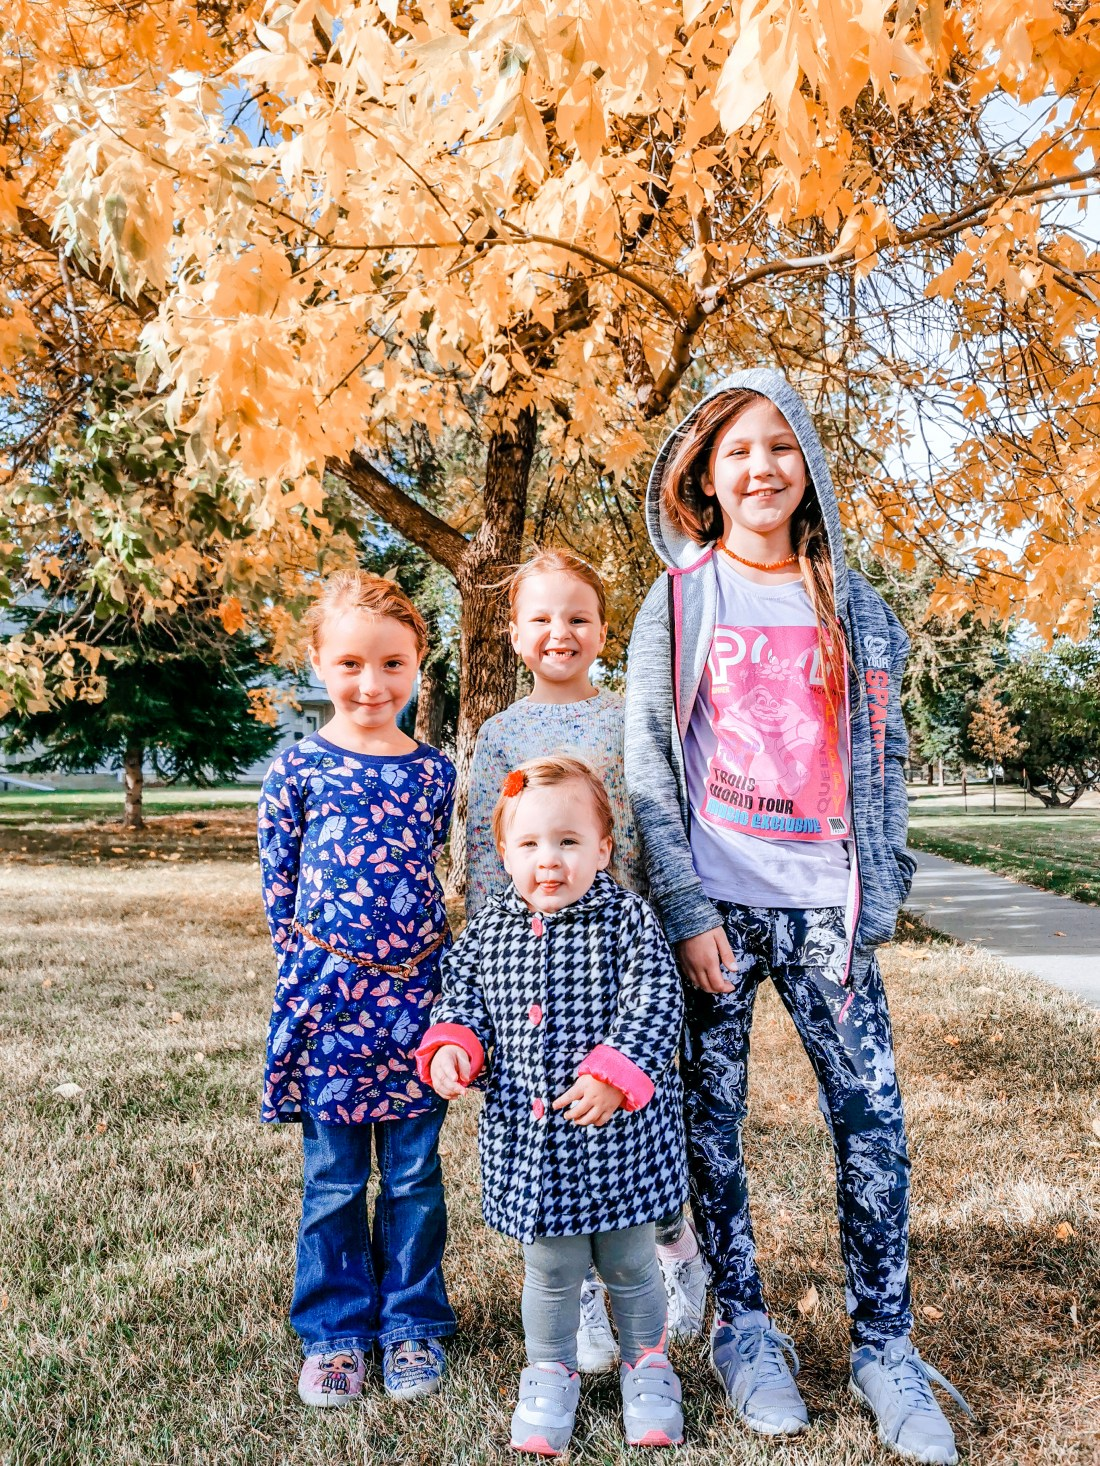 Mom Blog - Edmonton, Alberta, Canada - Four Daughters - Parenting is tough when it's just one kid!